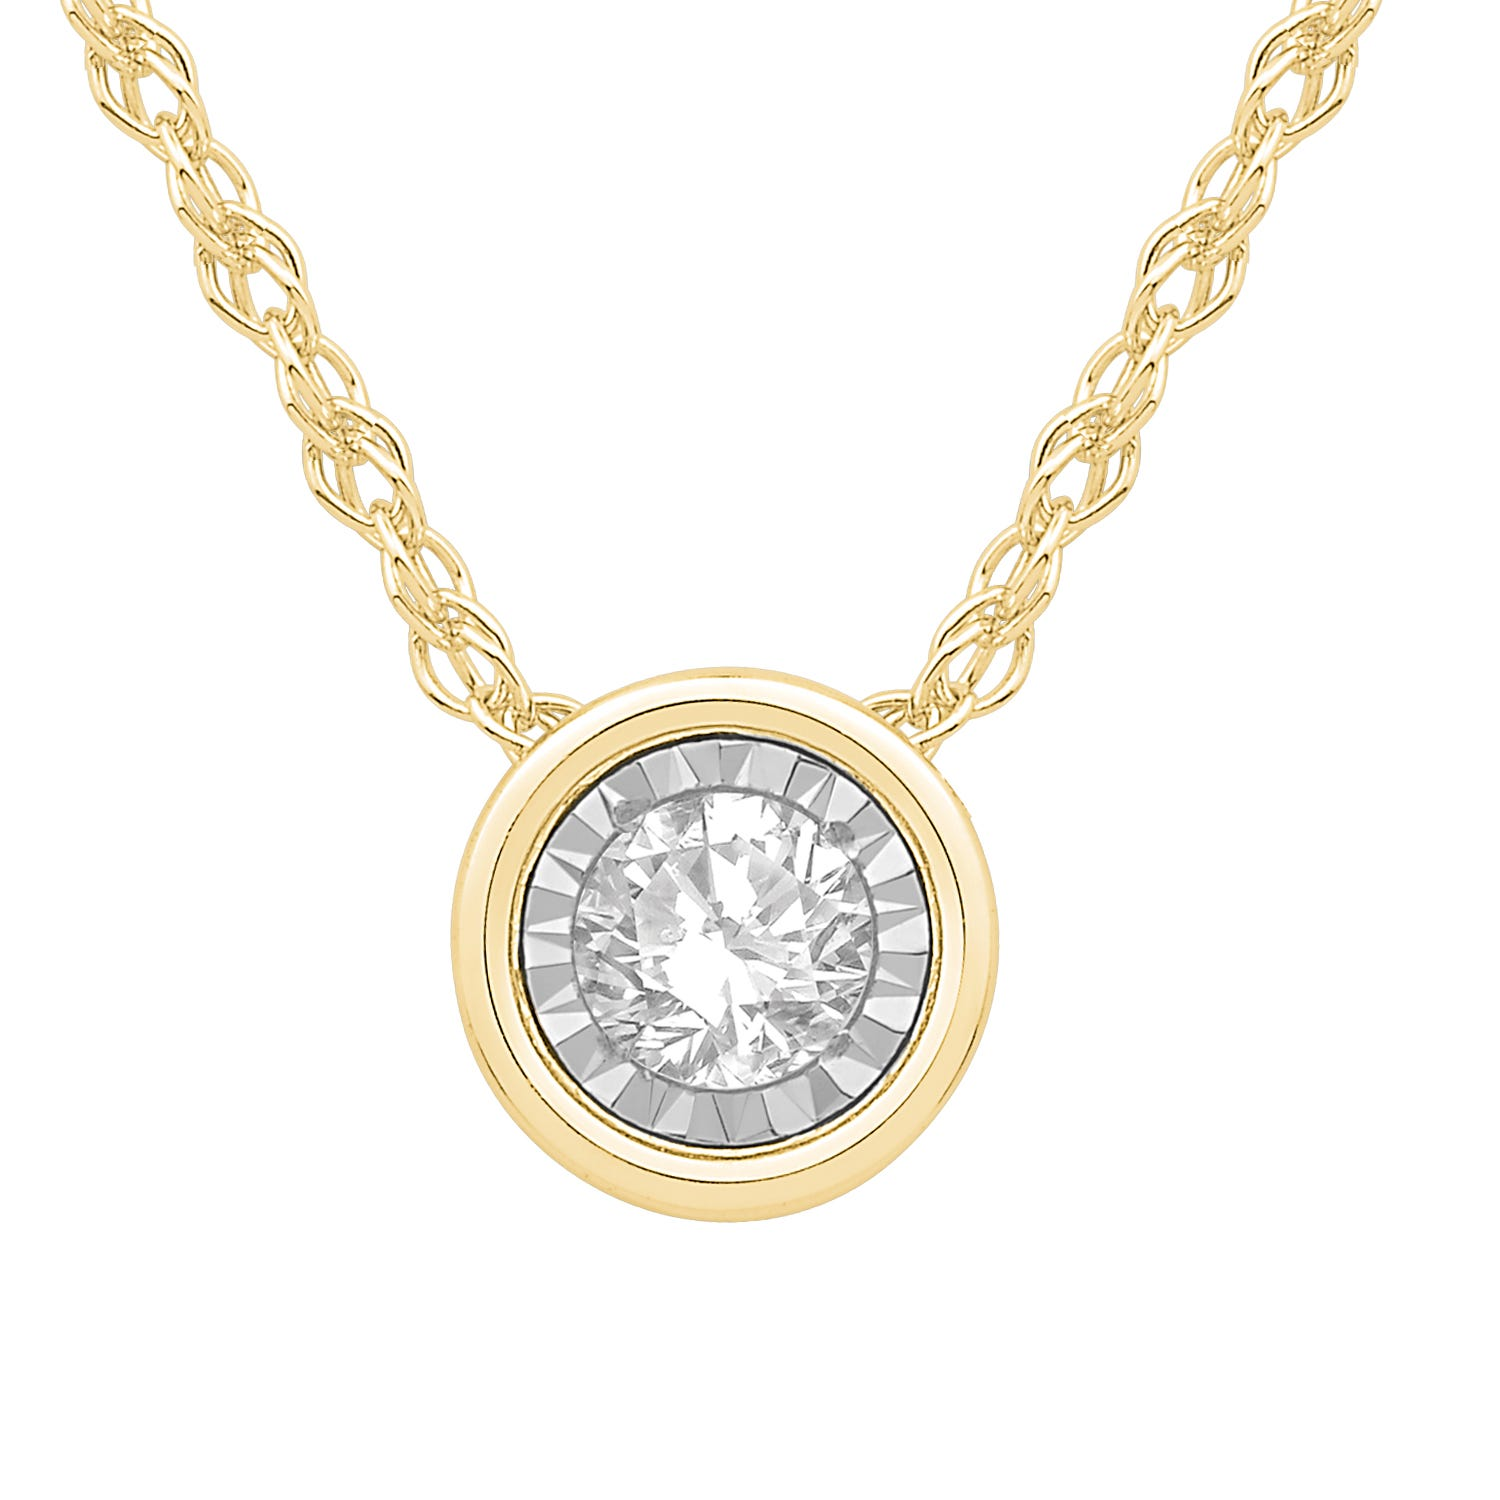 Bezel-Set Diamond 1/5ctw. (HI, I2-3) Solitaire Pendant in 10k Yellow Gold